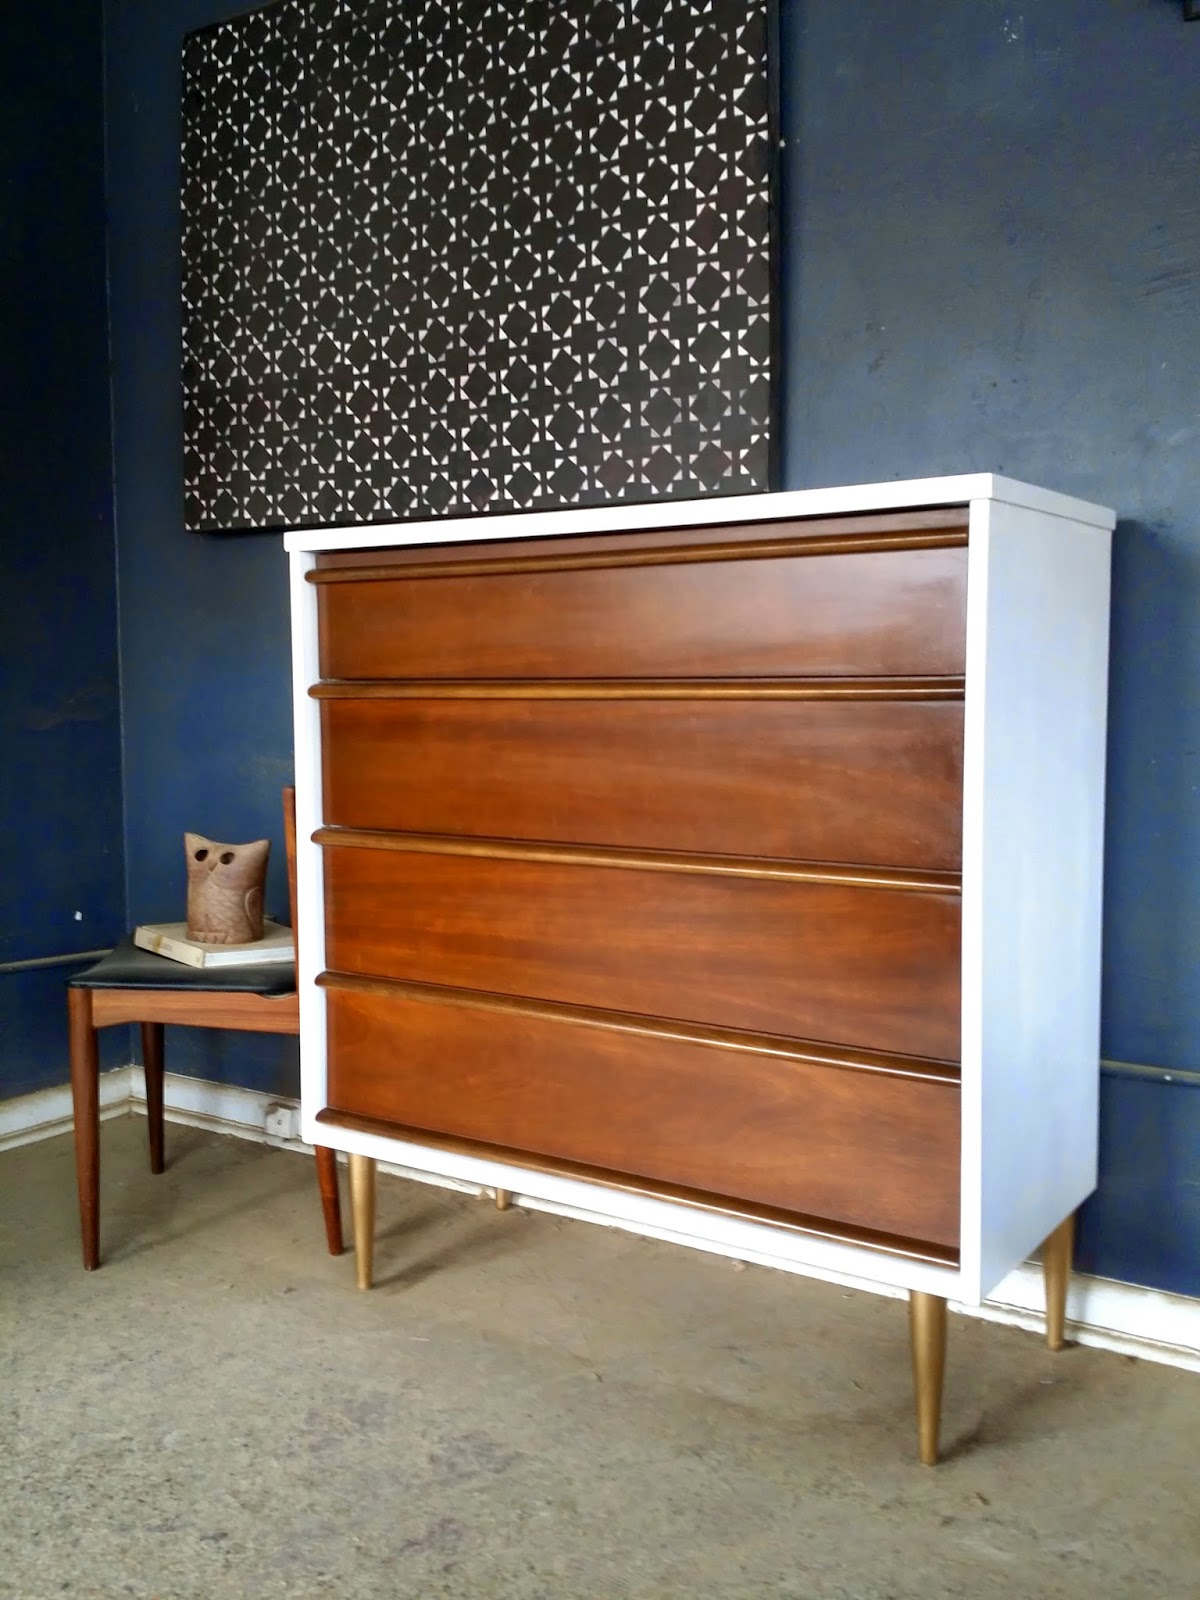 This Is A Stunning Mid Century Highboy Dresser The Casing Refinished In Crisp White Legs Are Gold Giving It Fantastic Look